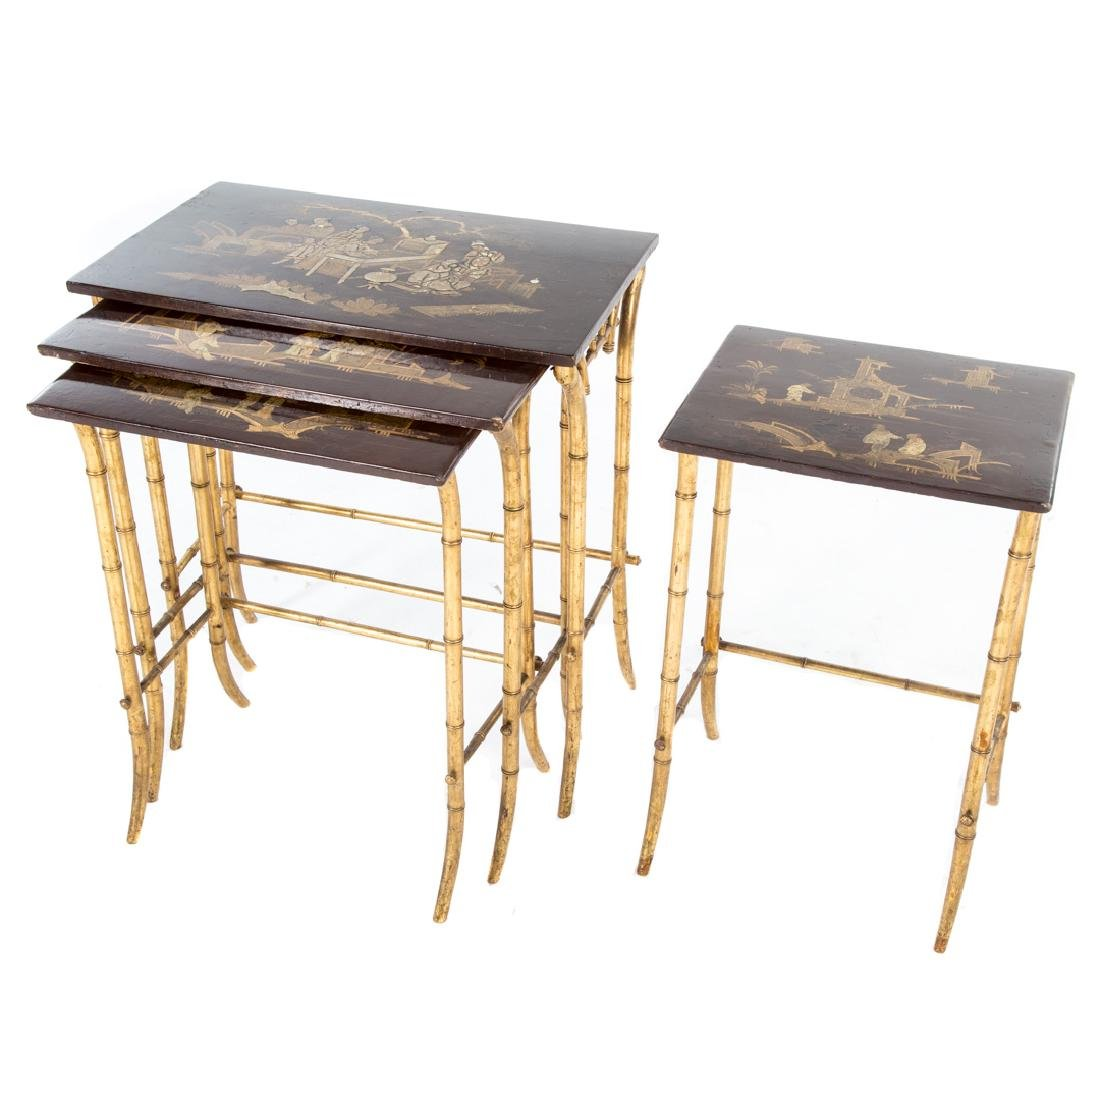 Chinese Export lacquer & gilt nesting tables, - 3